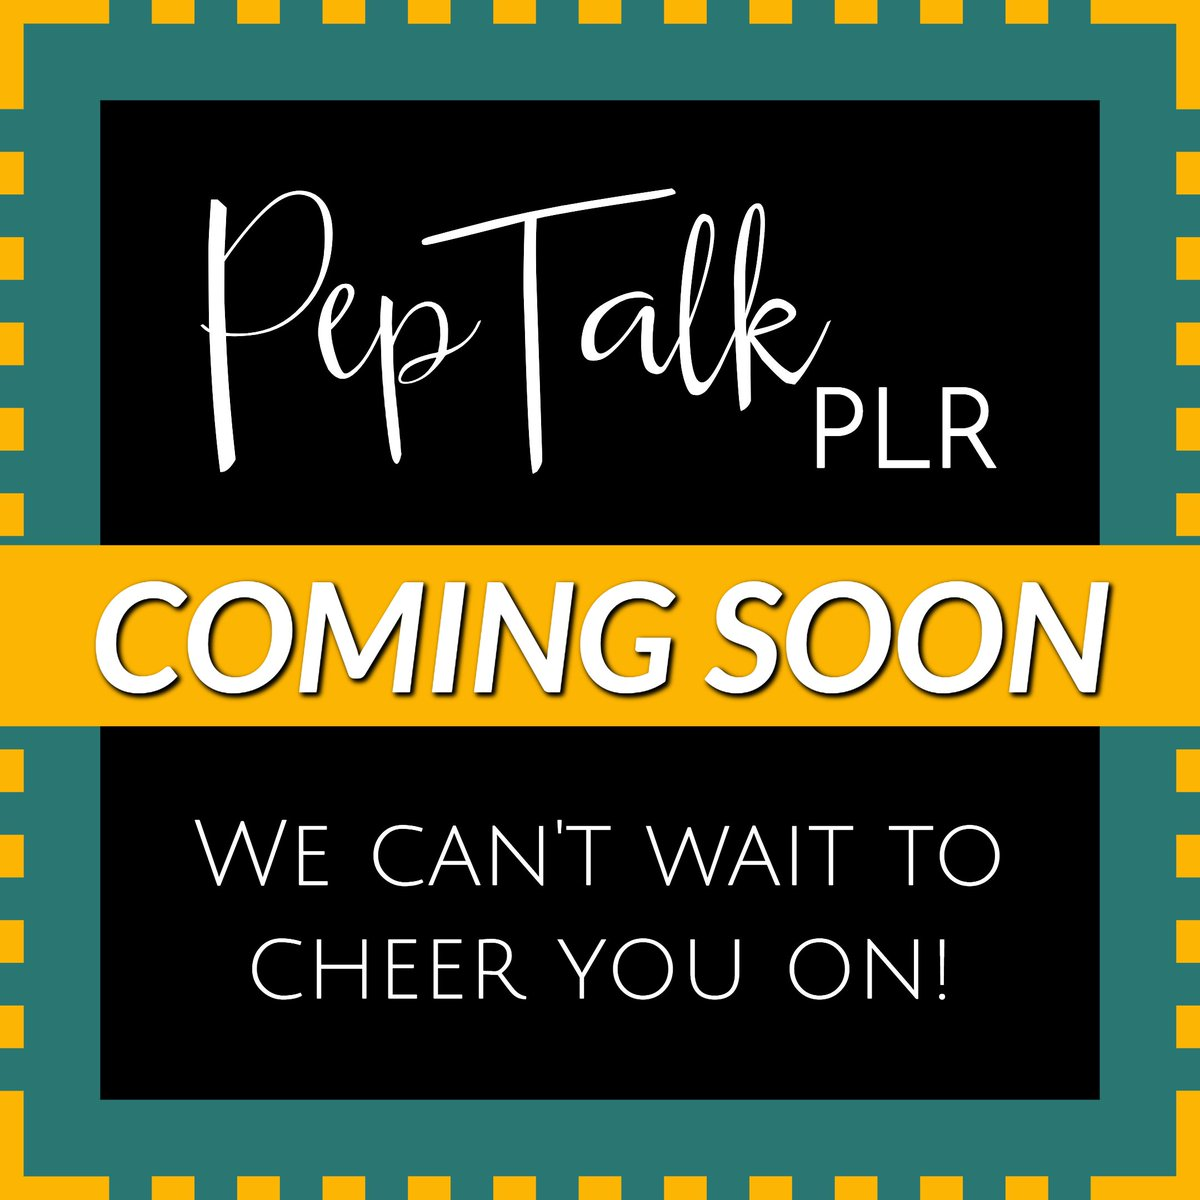 Pep Talk Plr Coupons